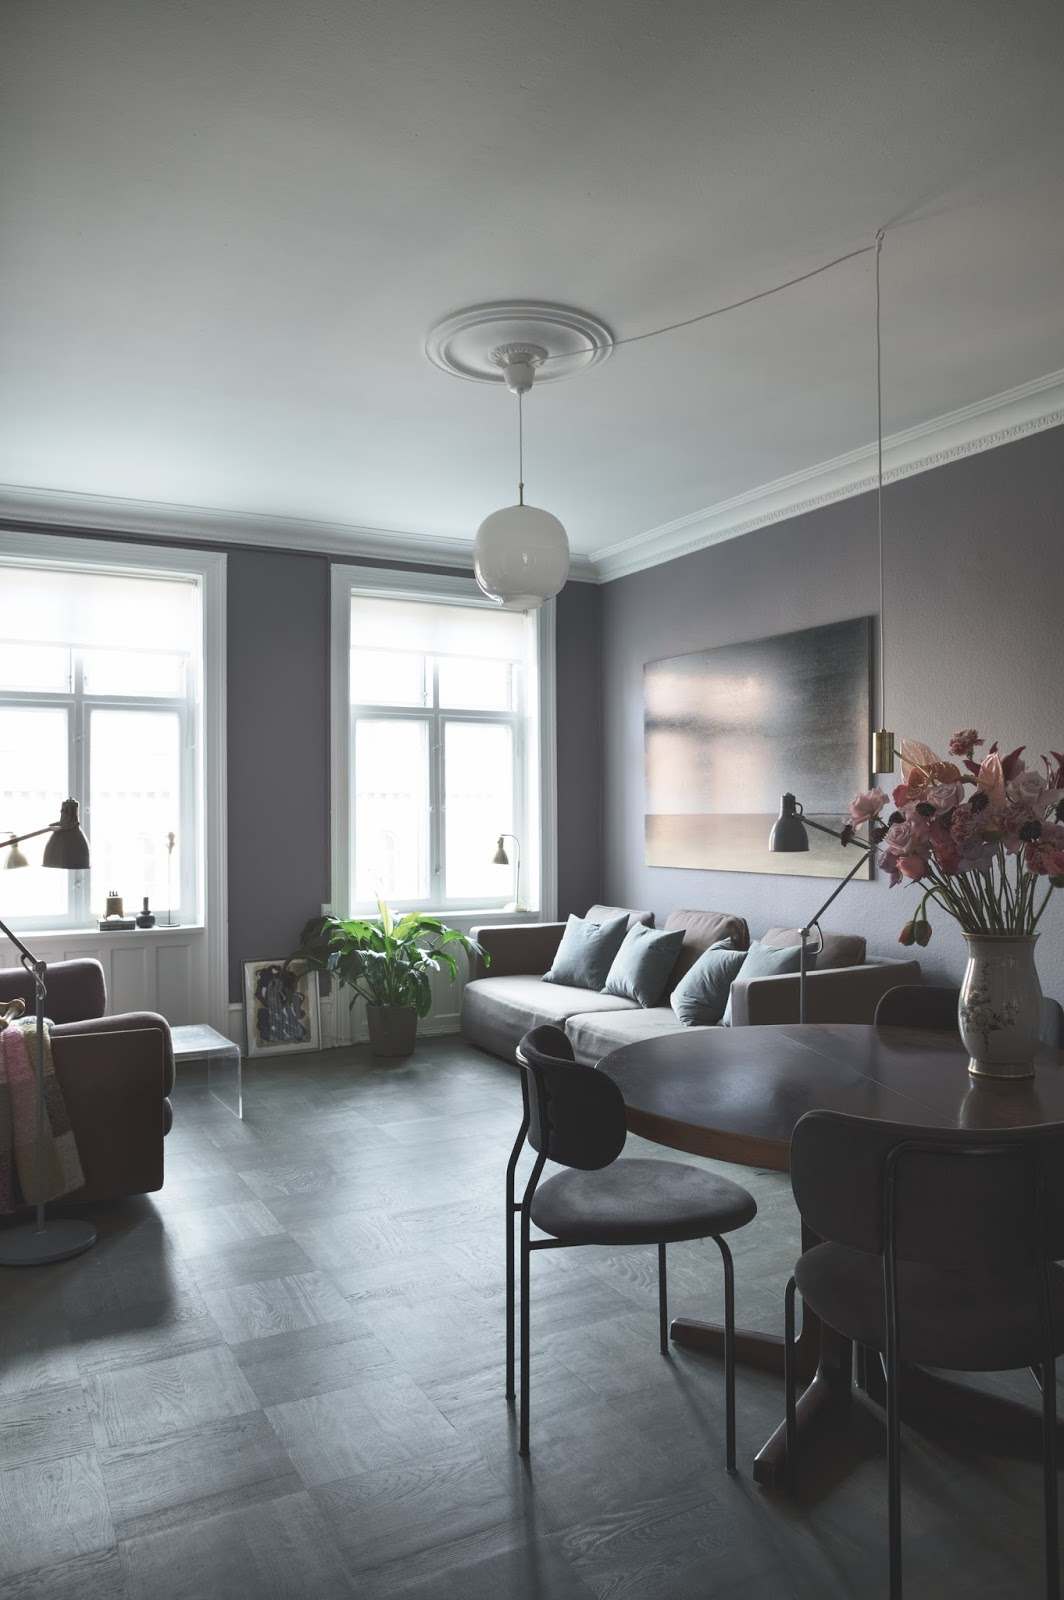 design attractor: Scandinavian apartment with dark painted